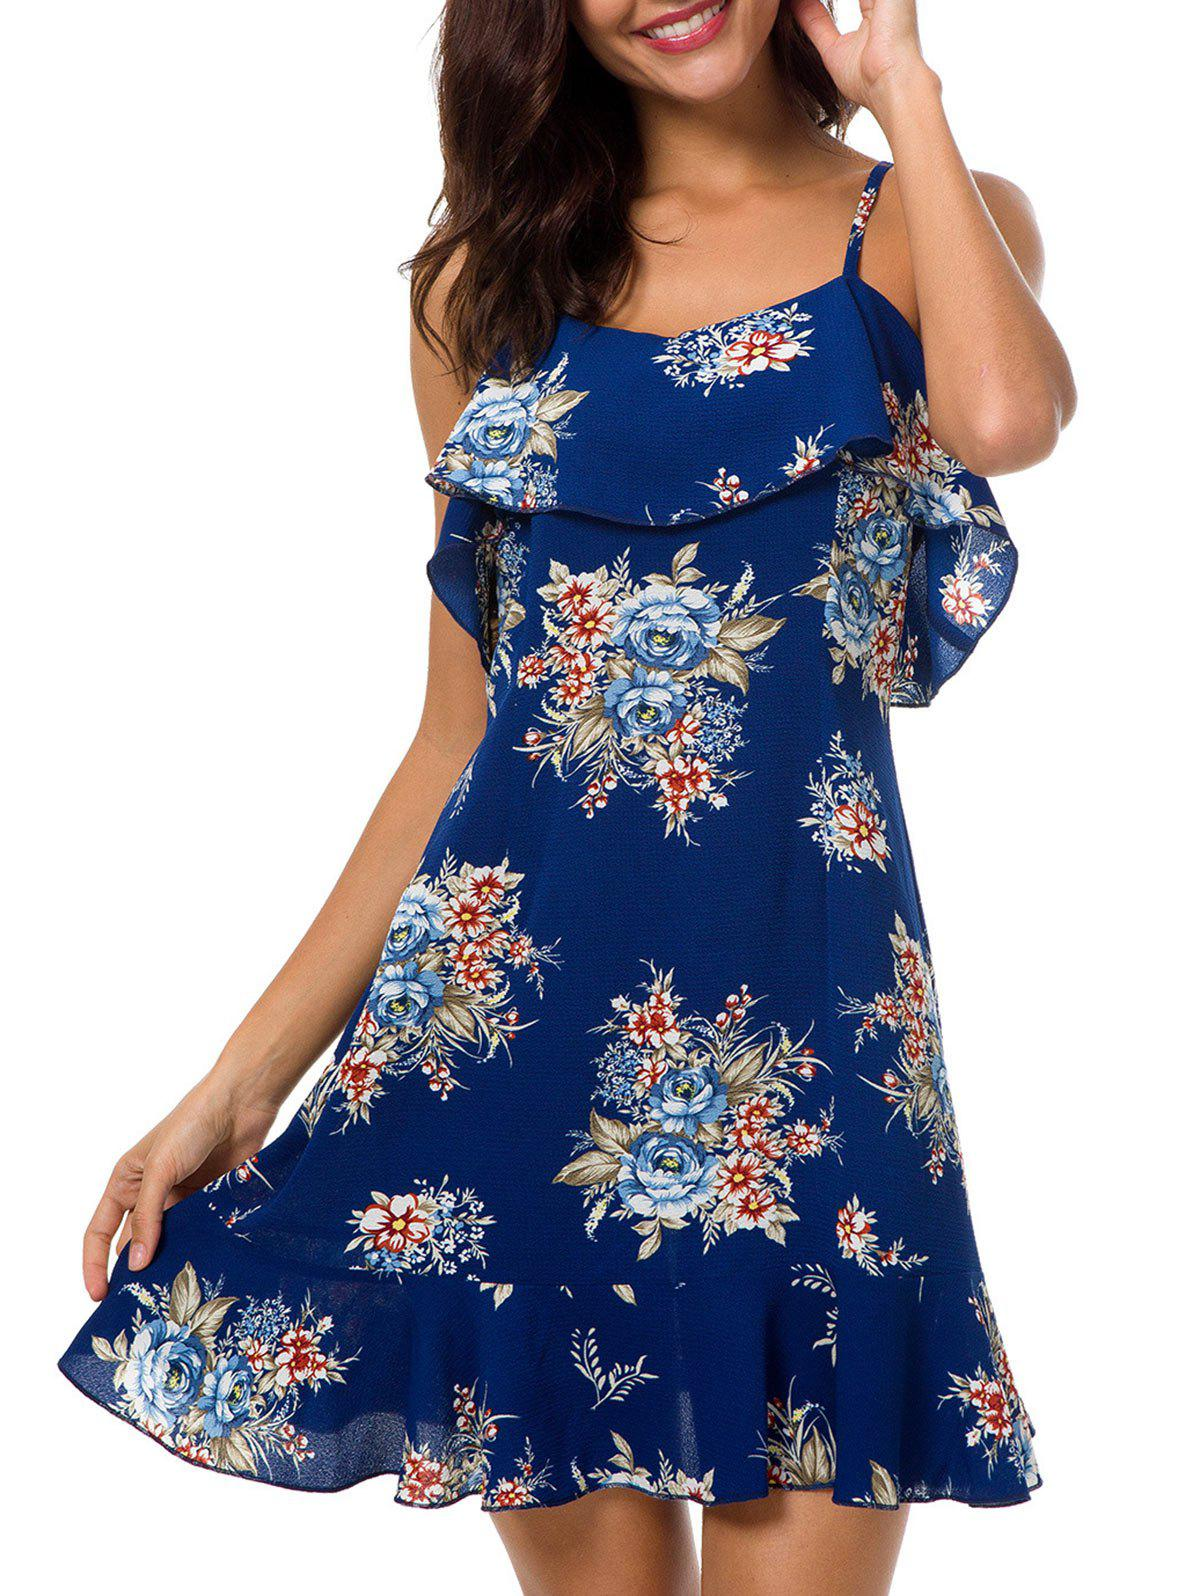 Open Back Flounce Trim Floral Dress - DEEP BLUE XL